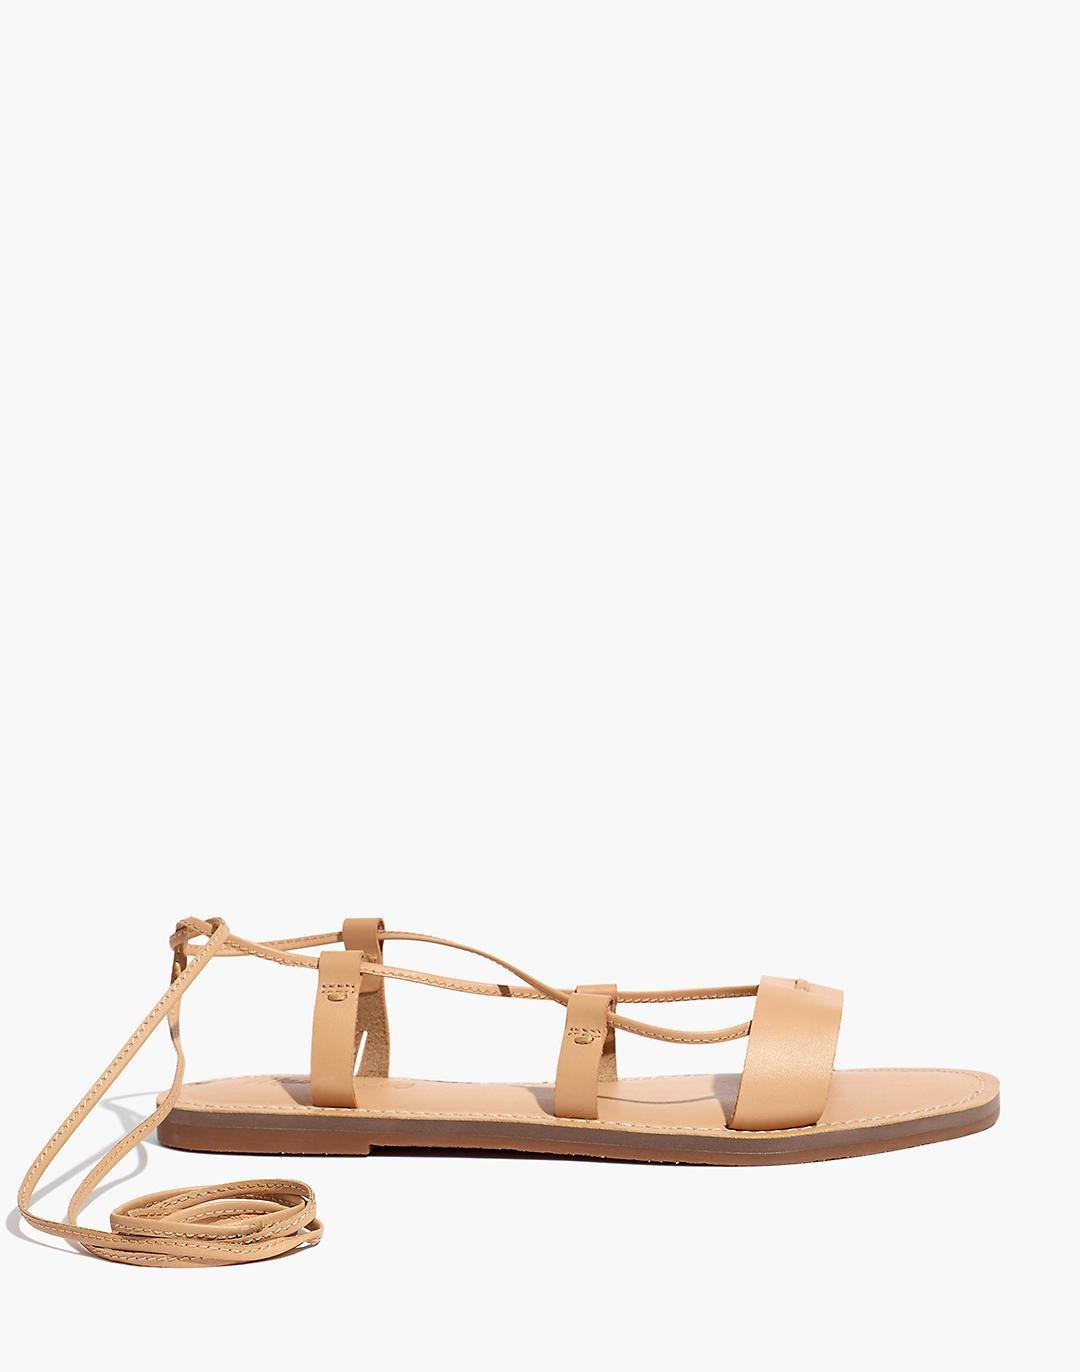 The Boardwalk Lace-Up Sandal in Leather 1